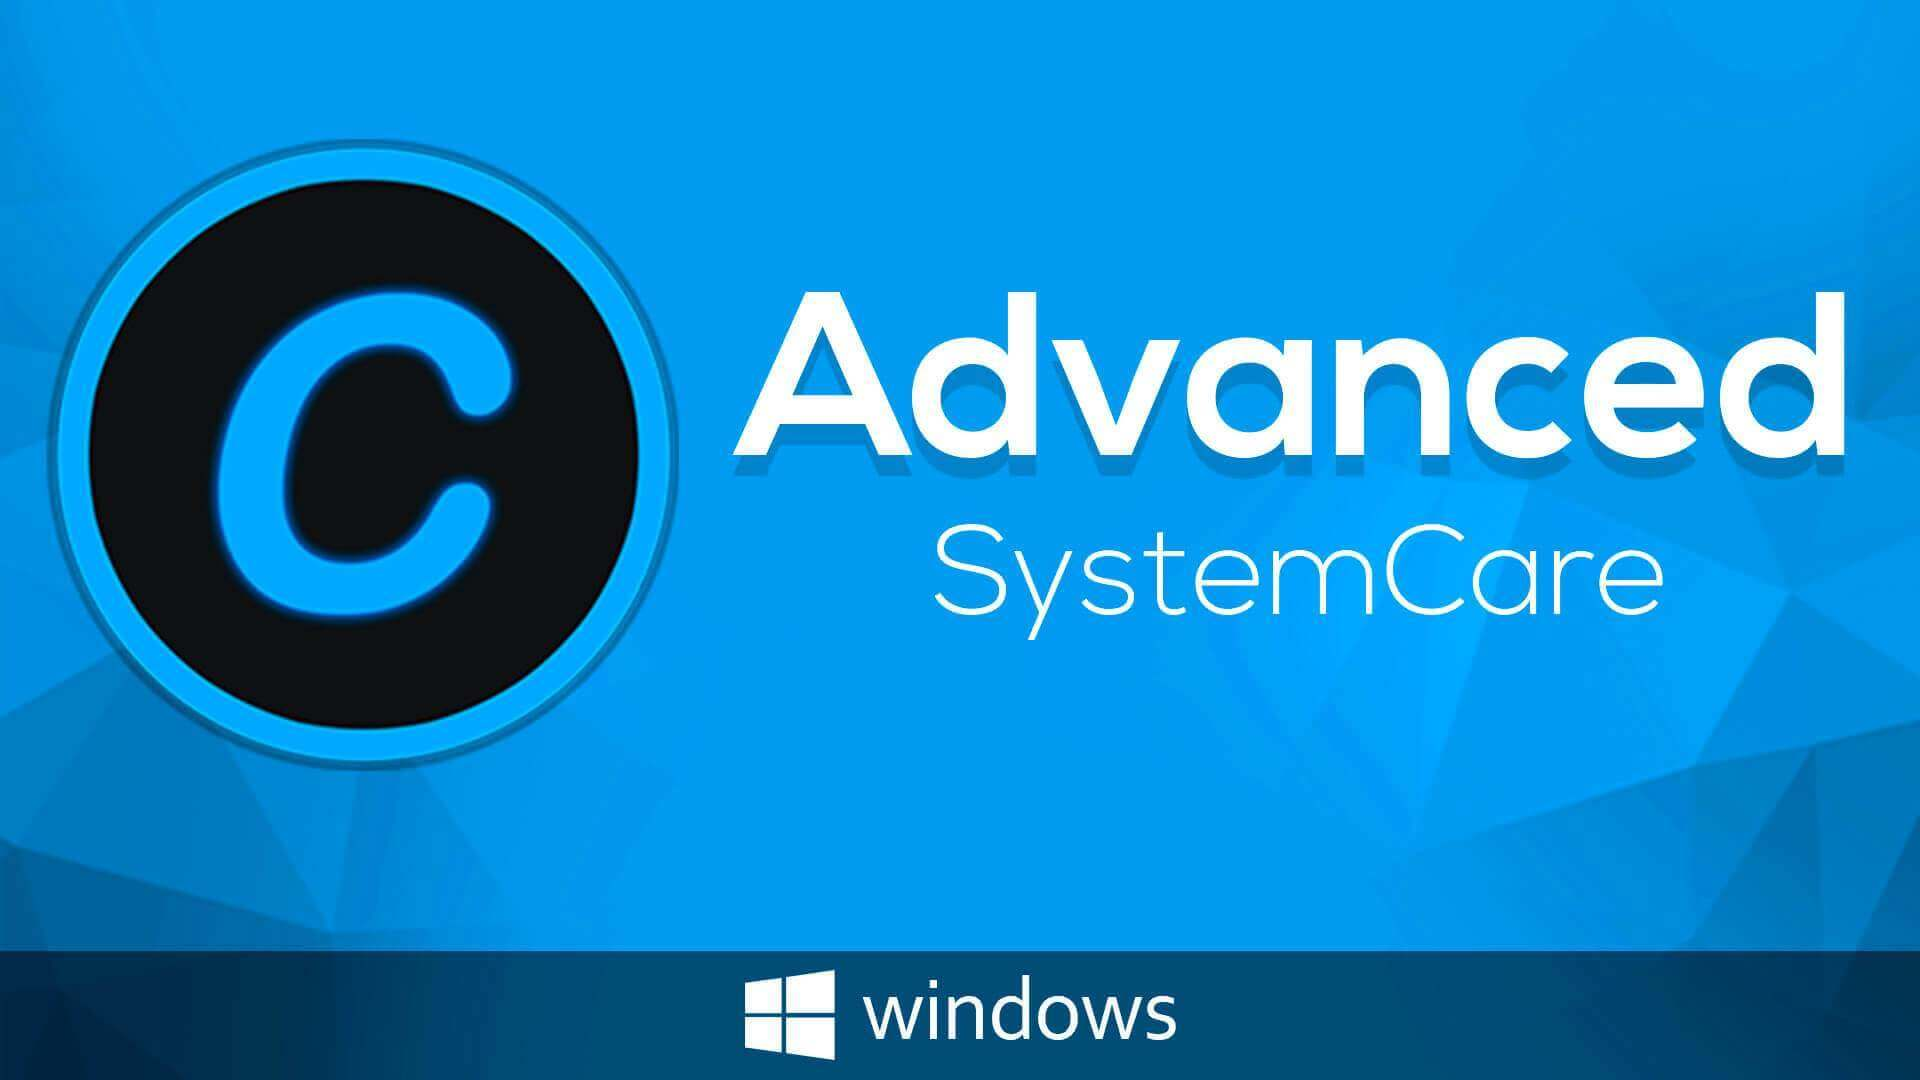 Advanced SystemCare Pro full version latest